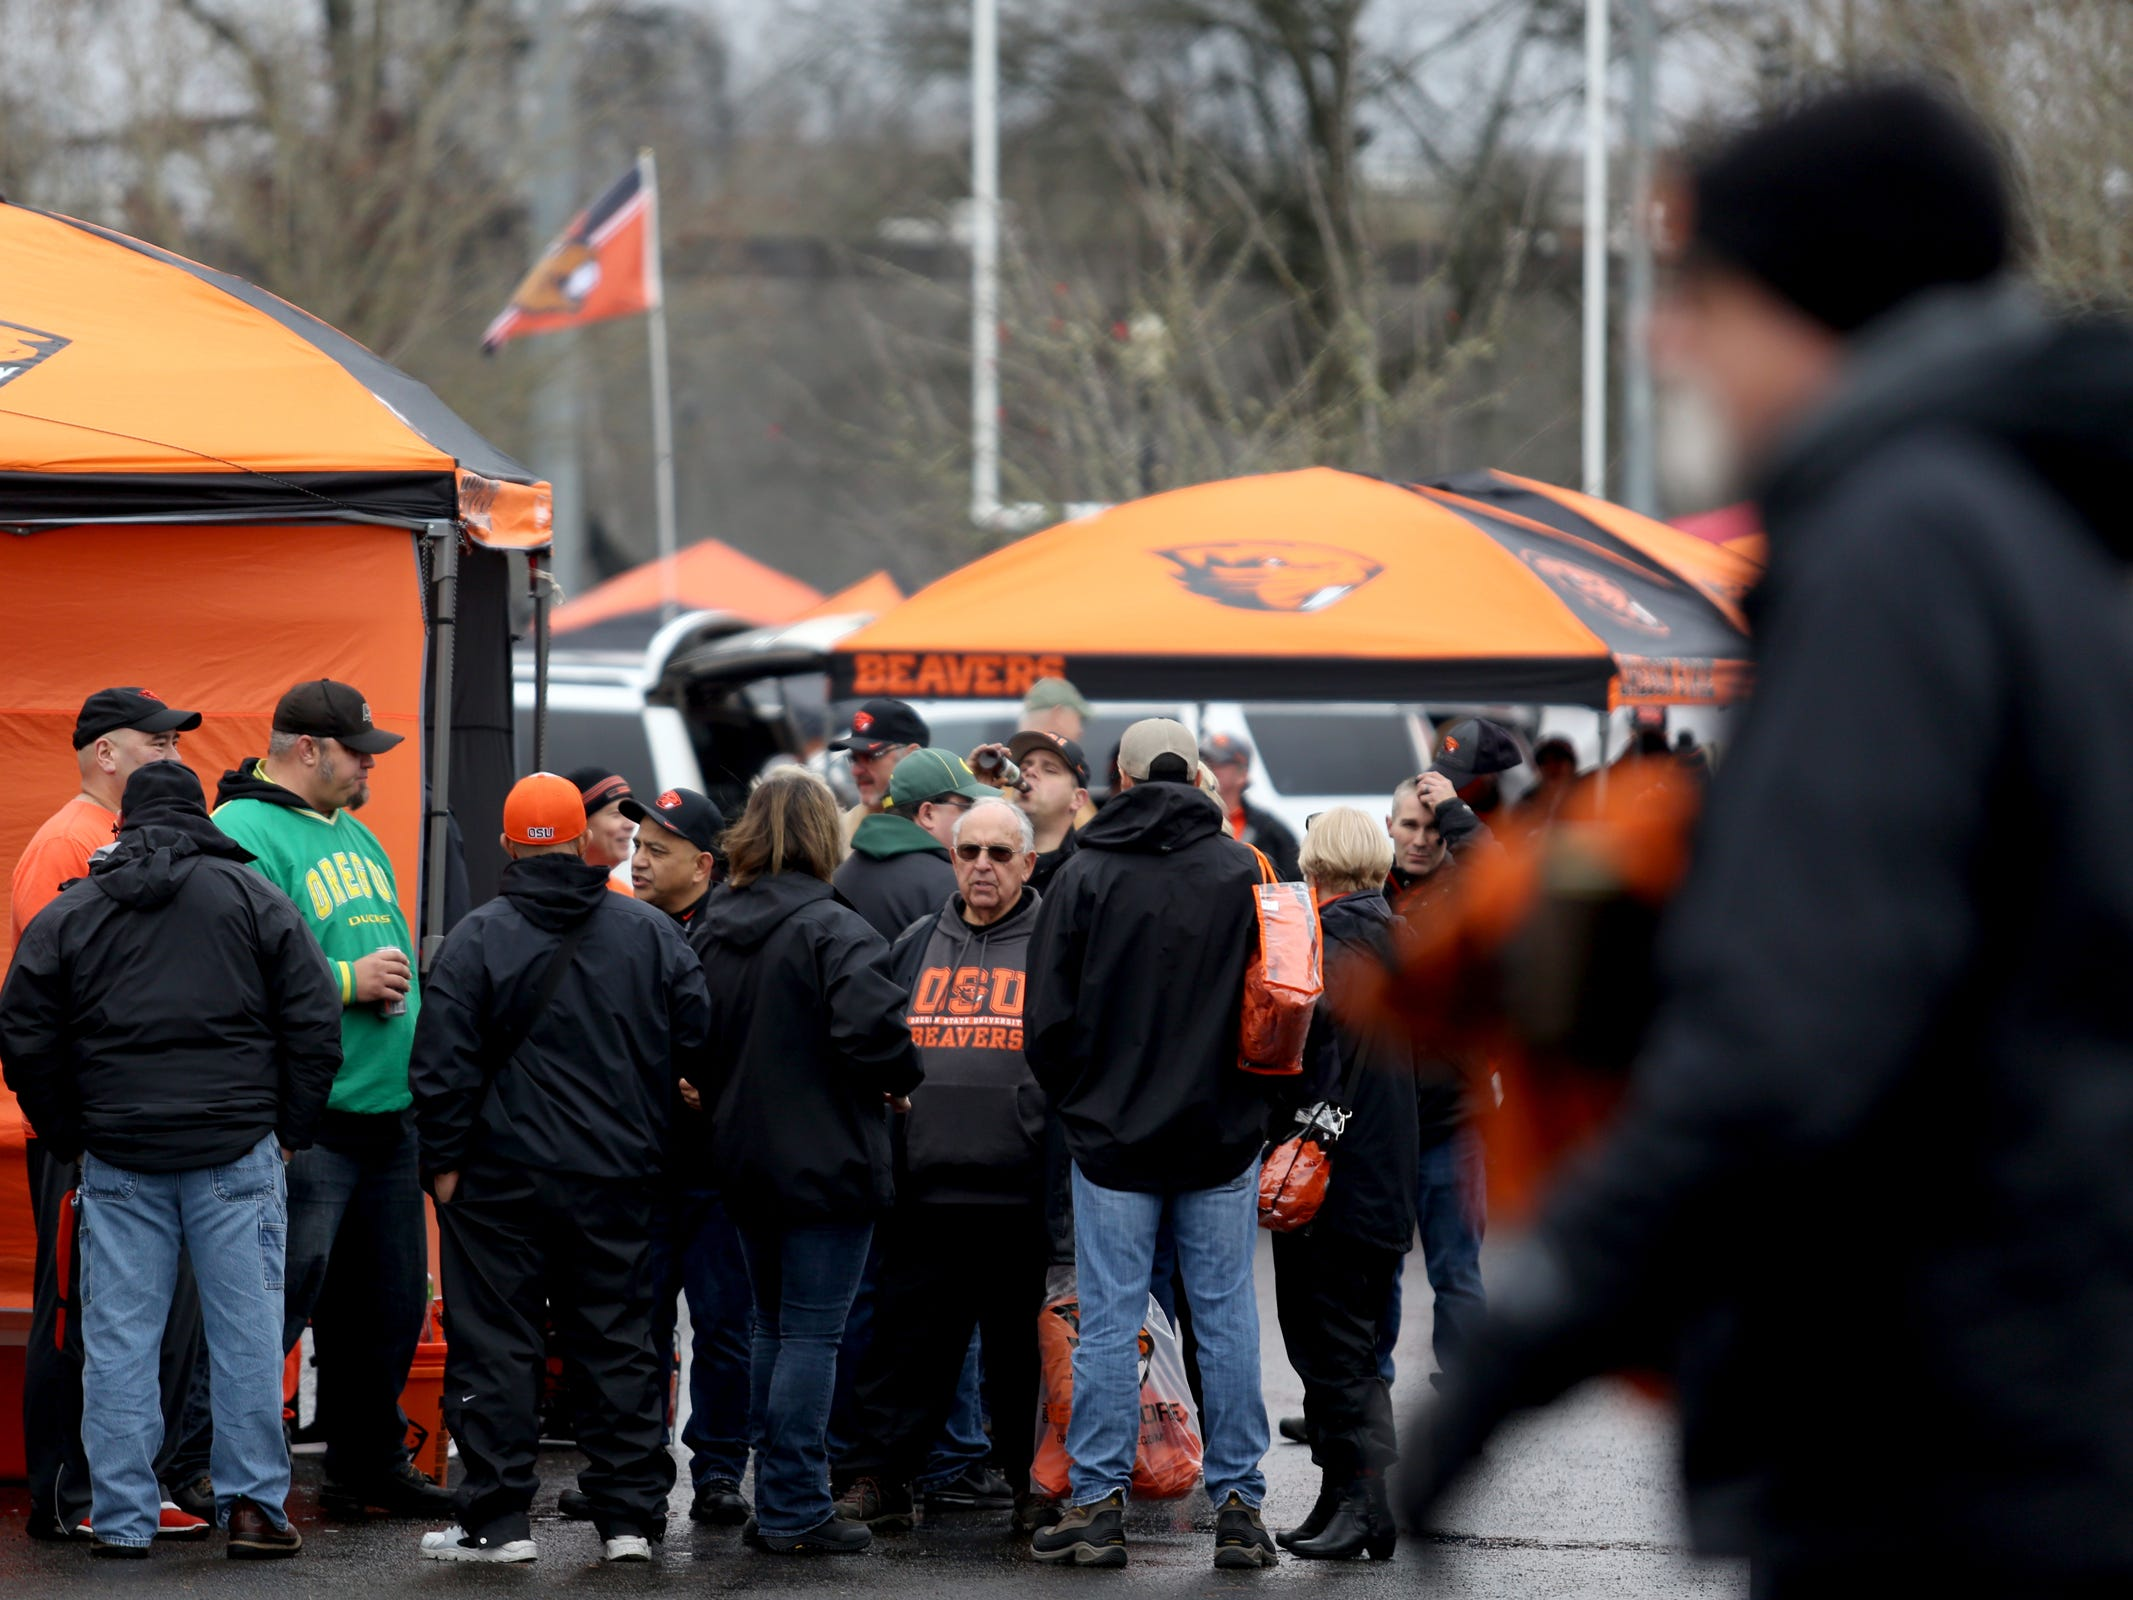 Oregon and Oregon State fans tailgate together before the start of the Oregon vs. Oregon State Civil war football game at Oregon State University in Corvallis on Friday, Nov. 23, 2018.